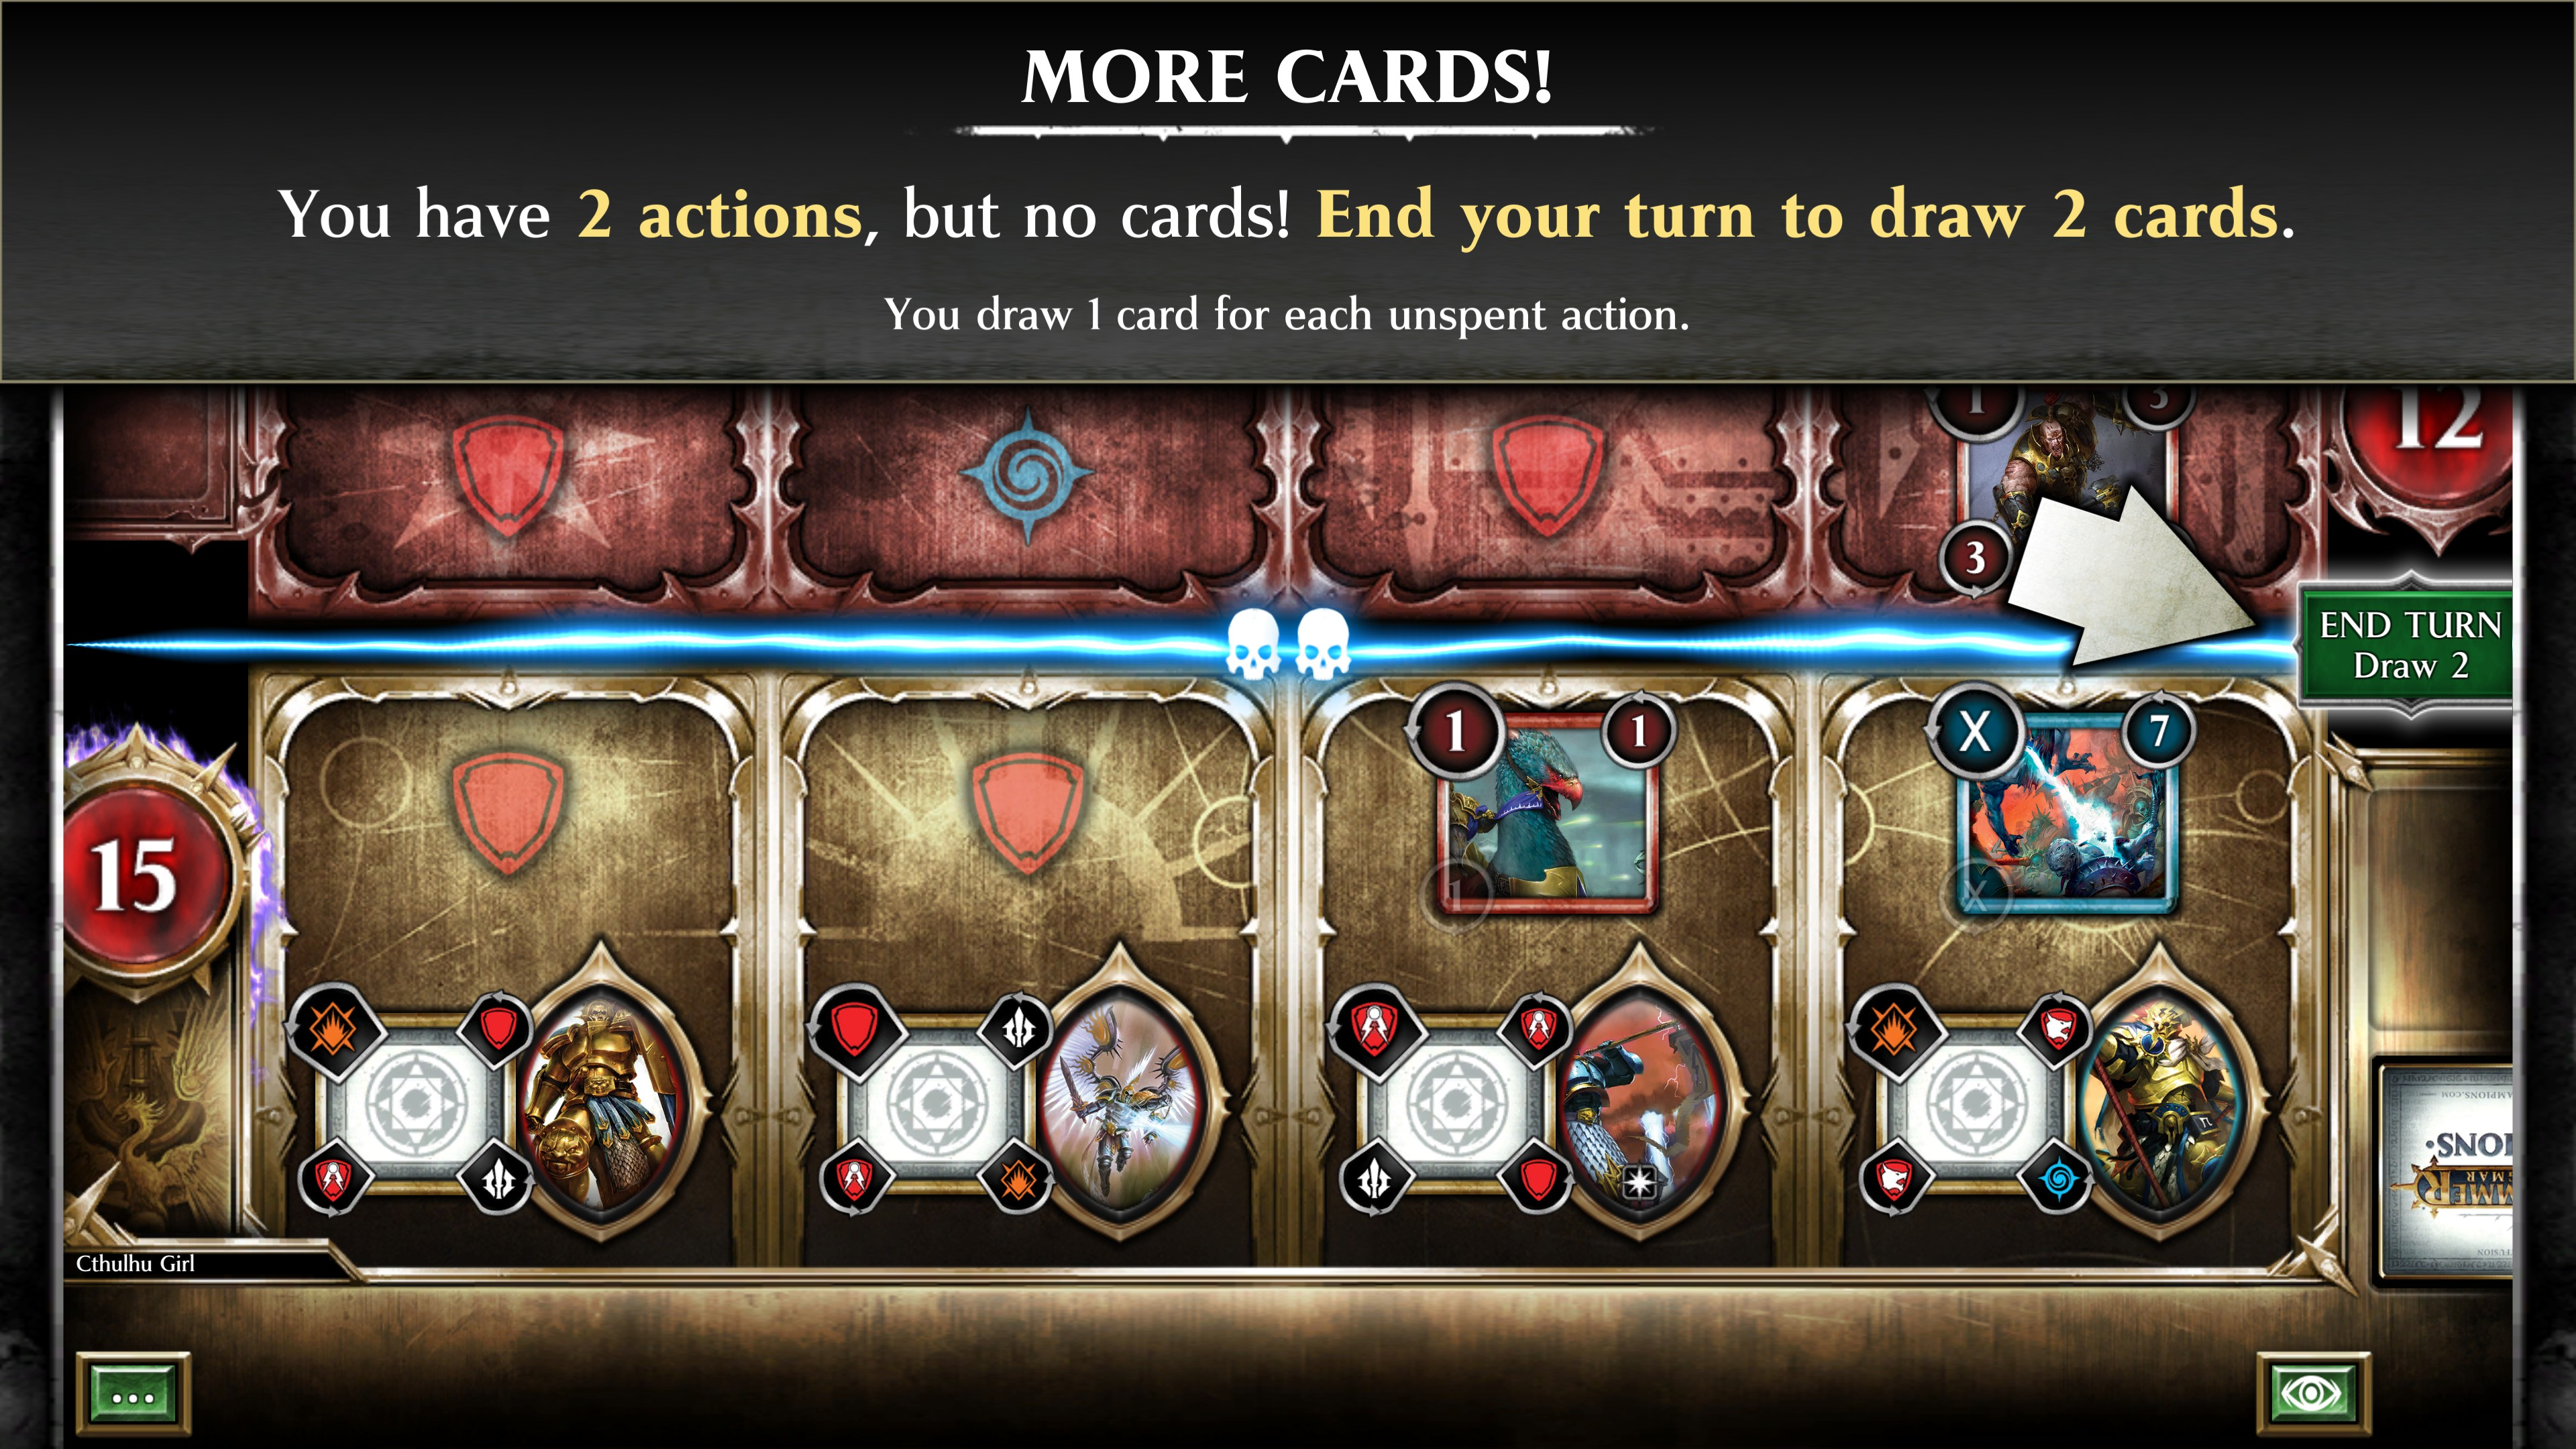 more cards description: you have 2 actions, but no cards. end your turn to draw 2 cards. you draw 1 card for each unspent action.